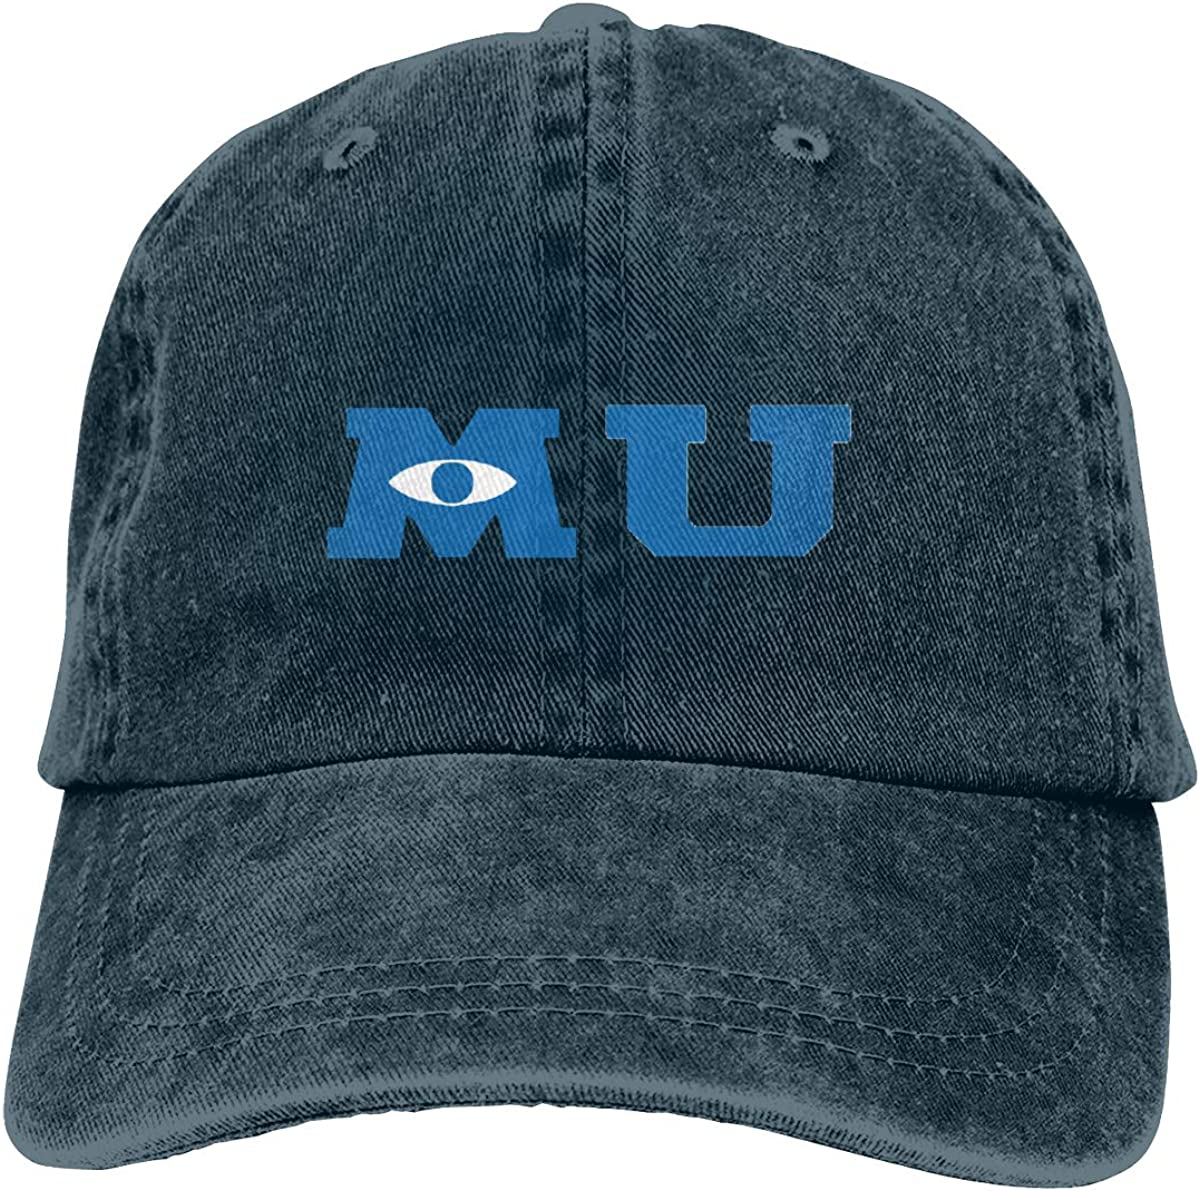 Myzly Monsters University Merchandise Denim Fabric Adjustable Fashion Baseball Cap Navy At Amazon Men S Clothing Store